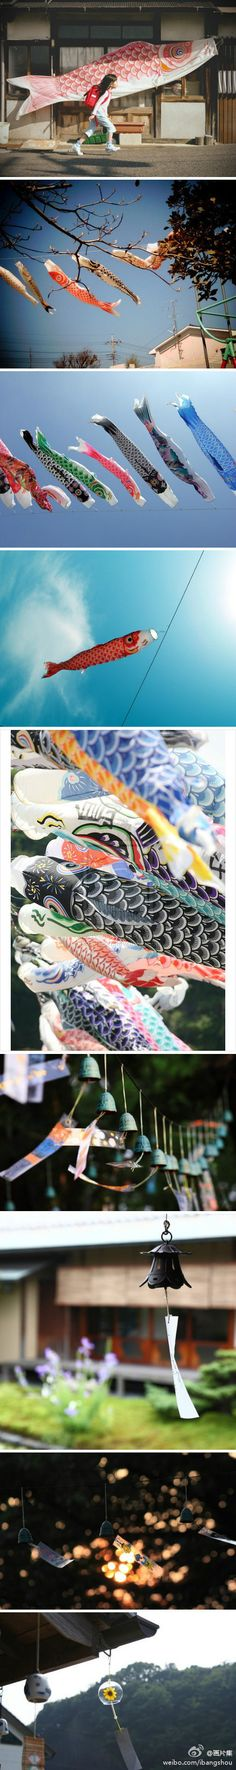 "Koinobori, meaning ""carp streamer"" in Japanese, are carp-shaped wind socks traditionally flown in Japan to celebrate Children's Day and Japanese wind chimes"